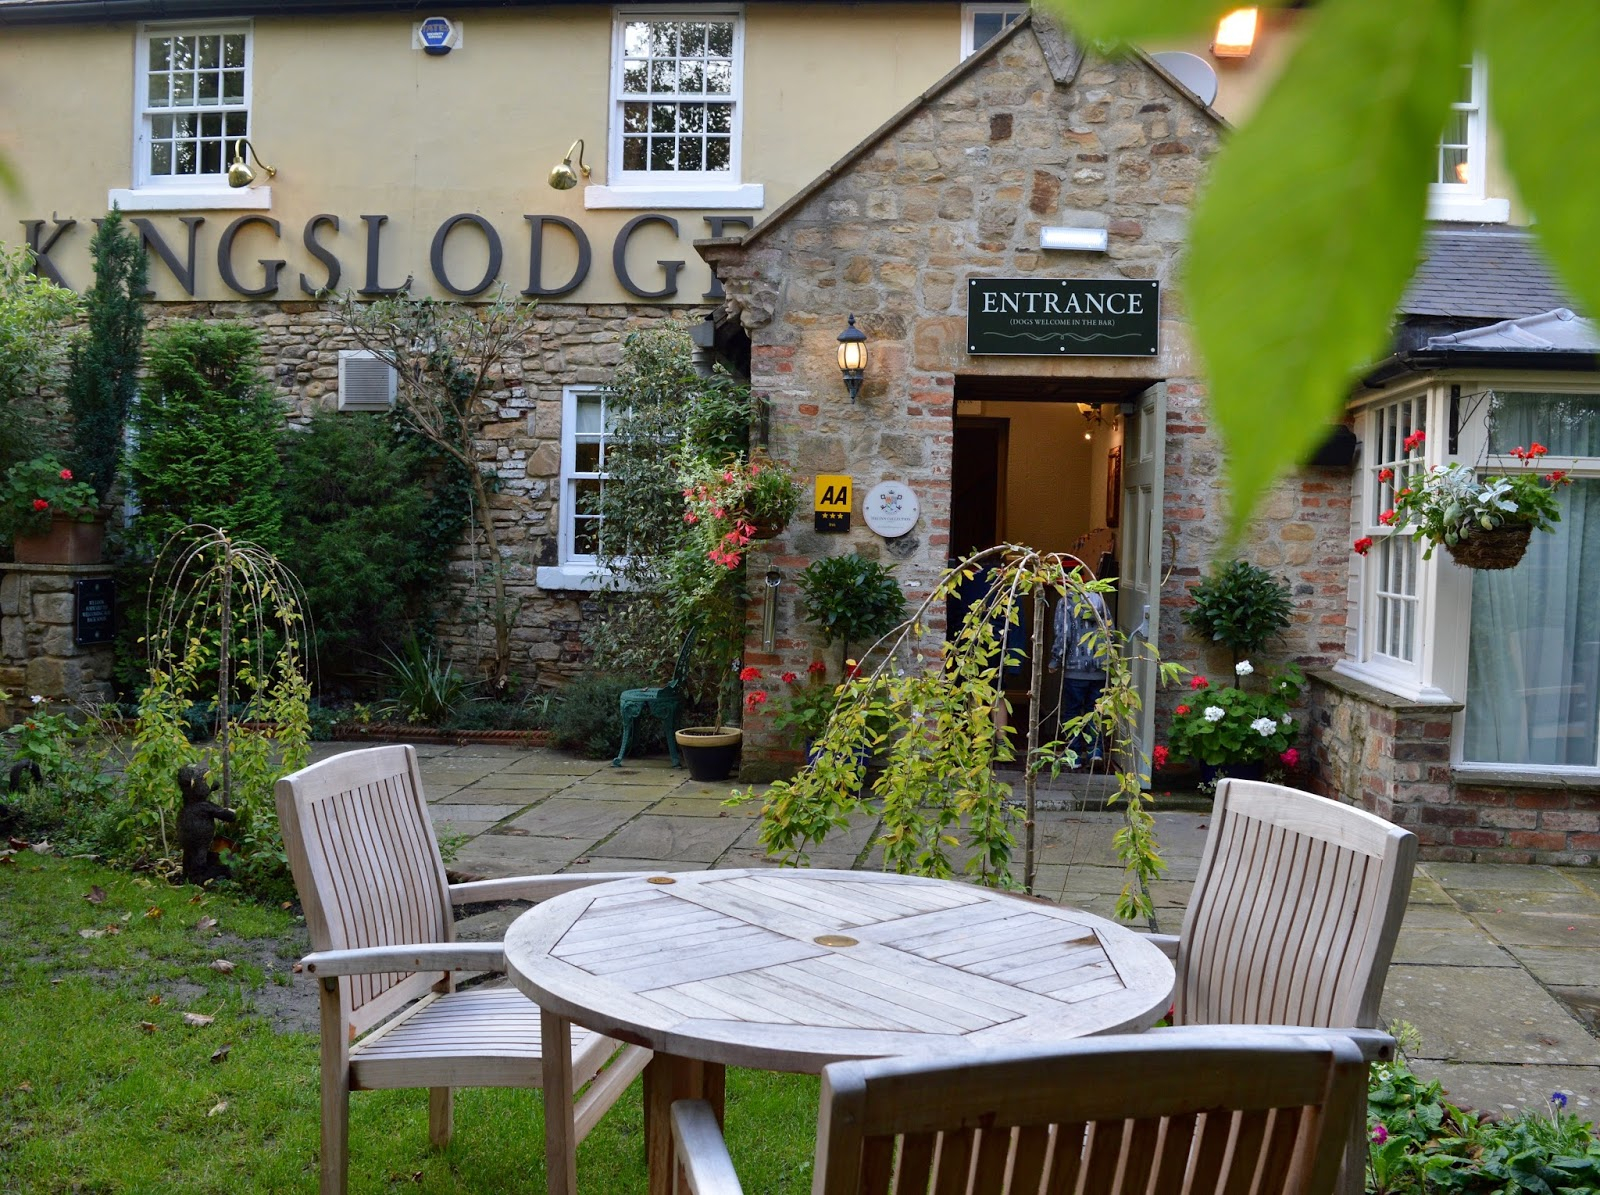 The Kingslodge Inn, Durham | A Review - A lovely budget hotel near the train station and city centre